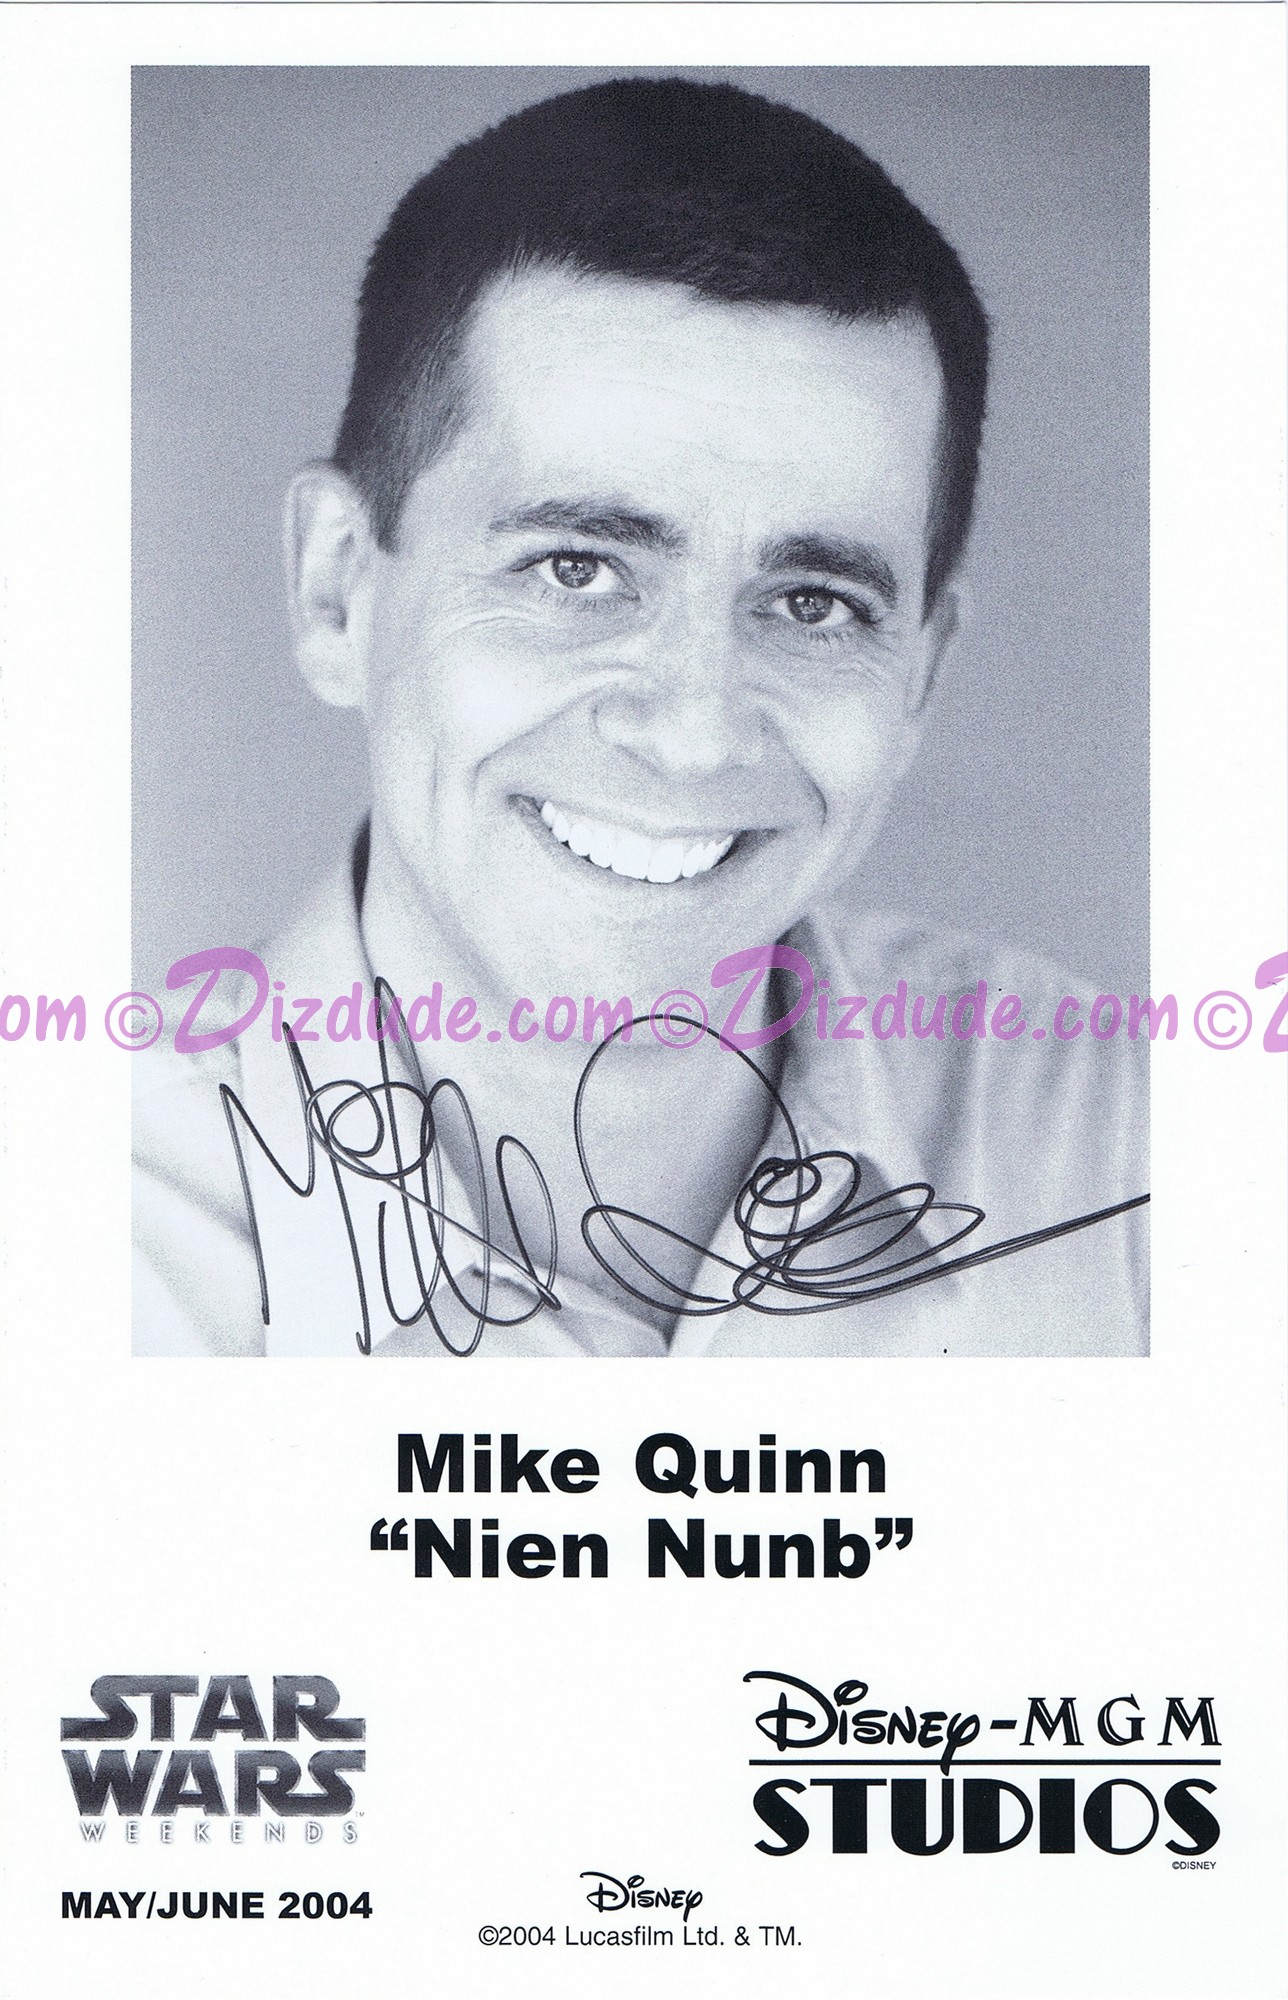 Mike Quinn who performed Nien Nunb Presigned Official Star Wars Weekends 2004 Celebrity Collector Photo © Dizdude.com